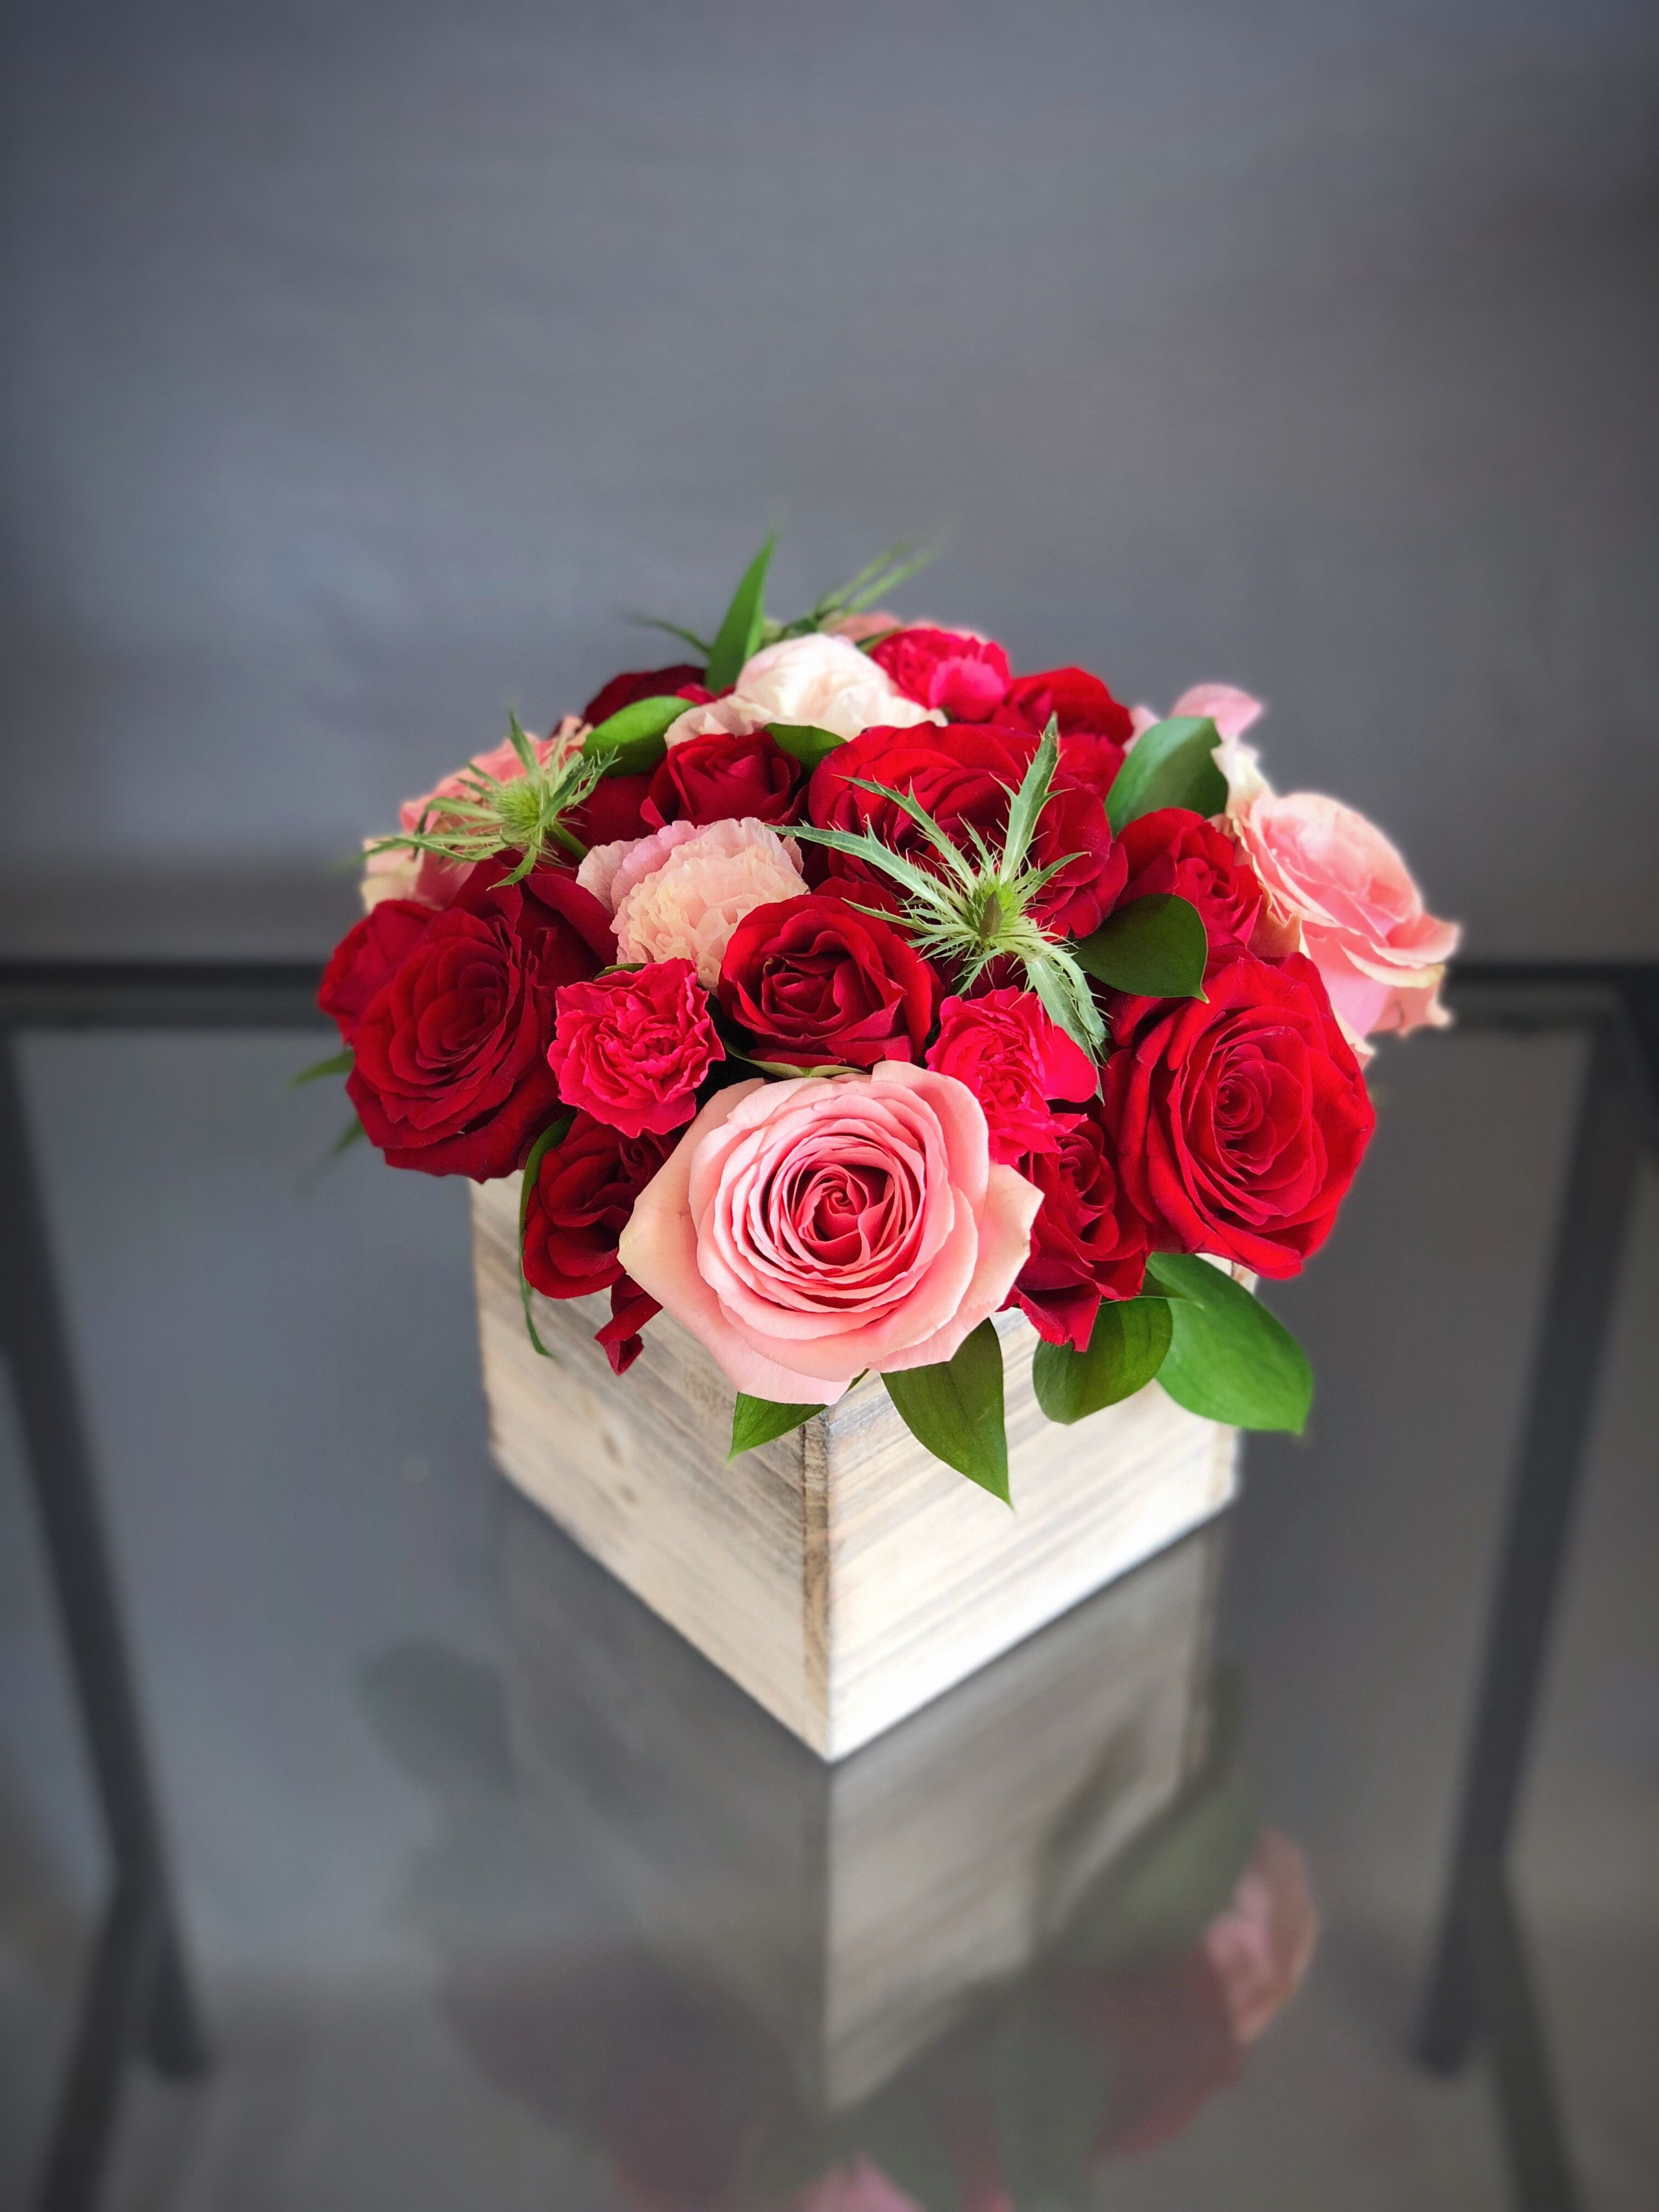 Table With Red And Pink Roses